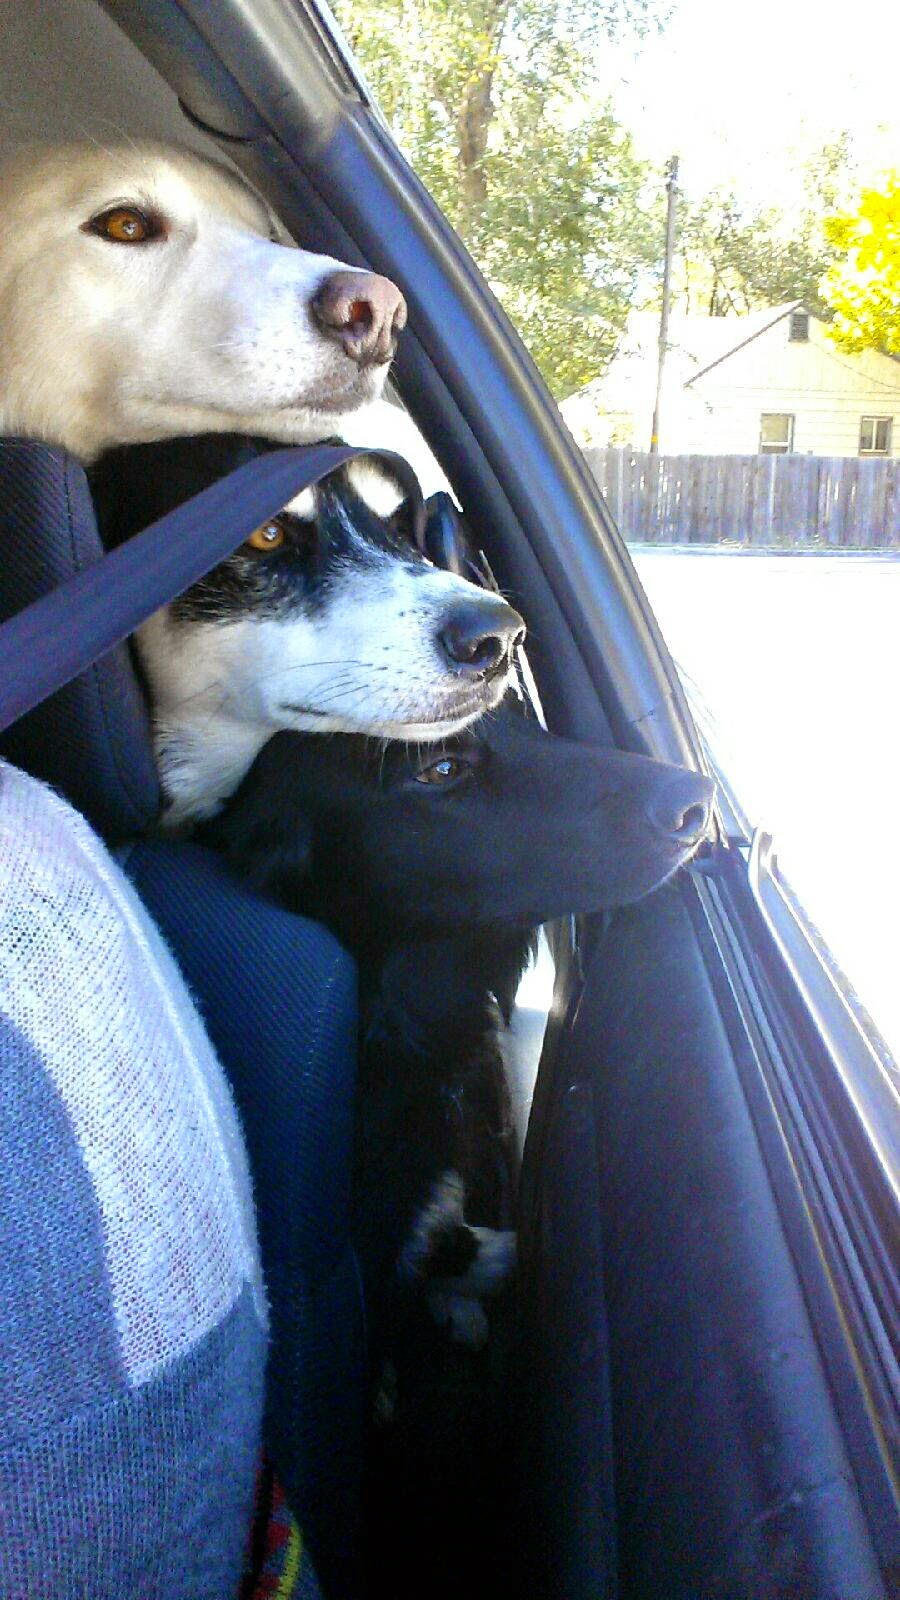 adorable dog pictures, puppy photos, funny dogs